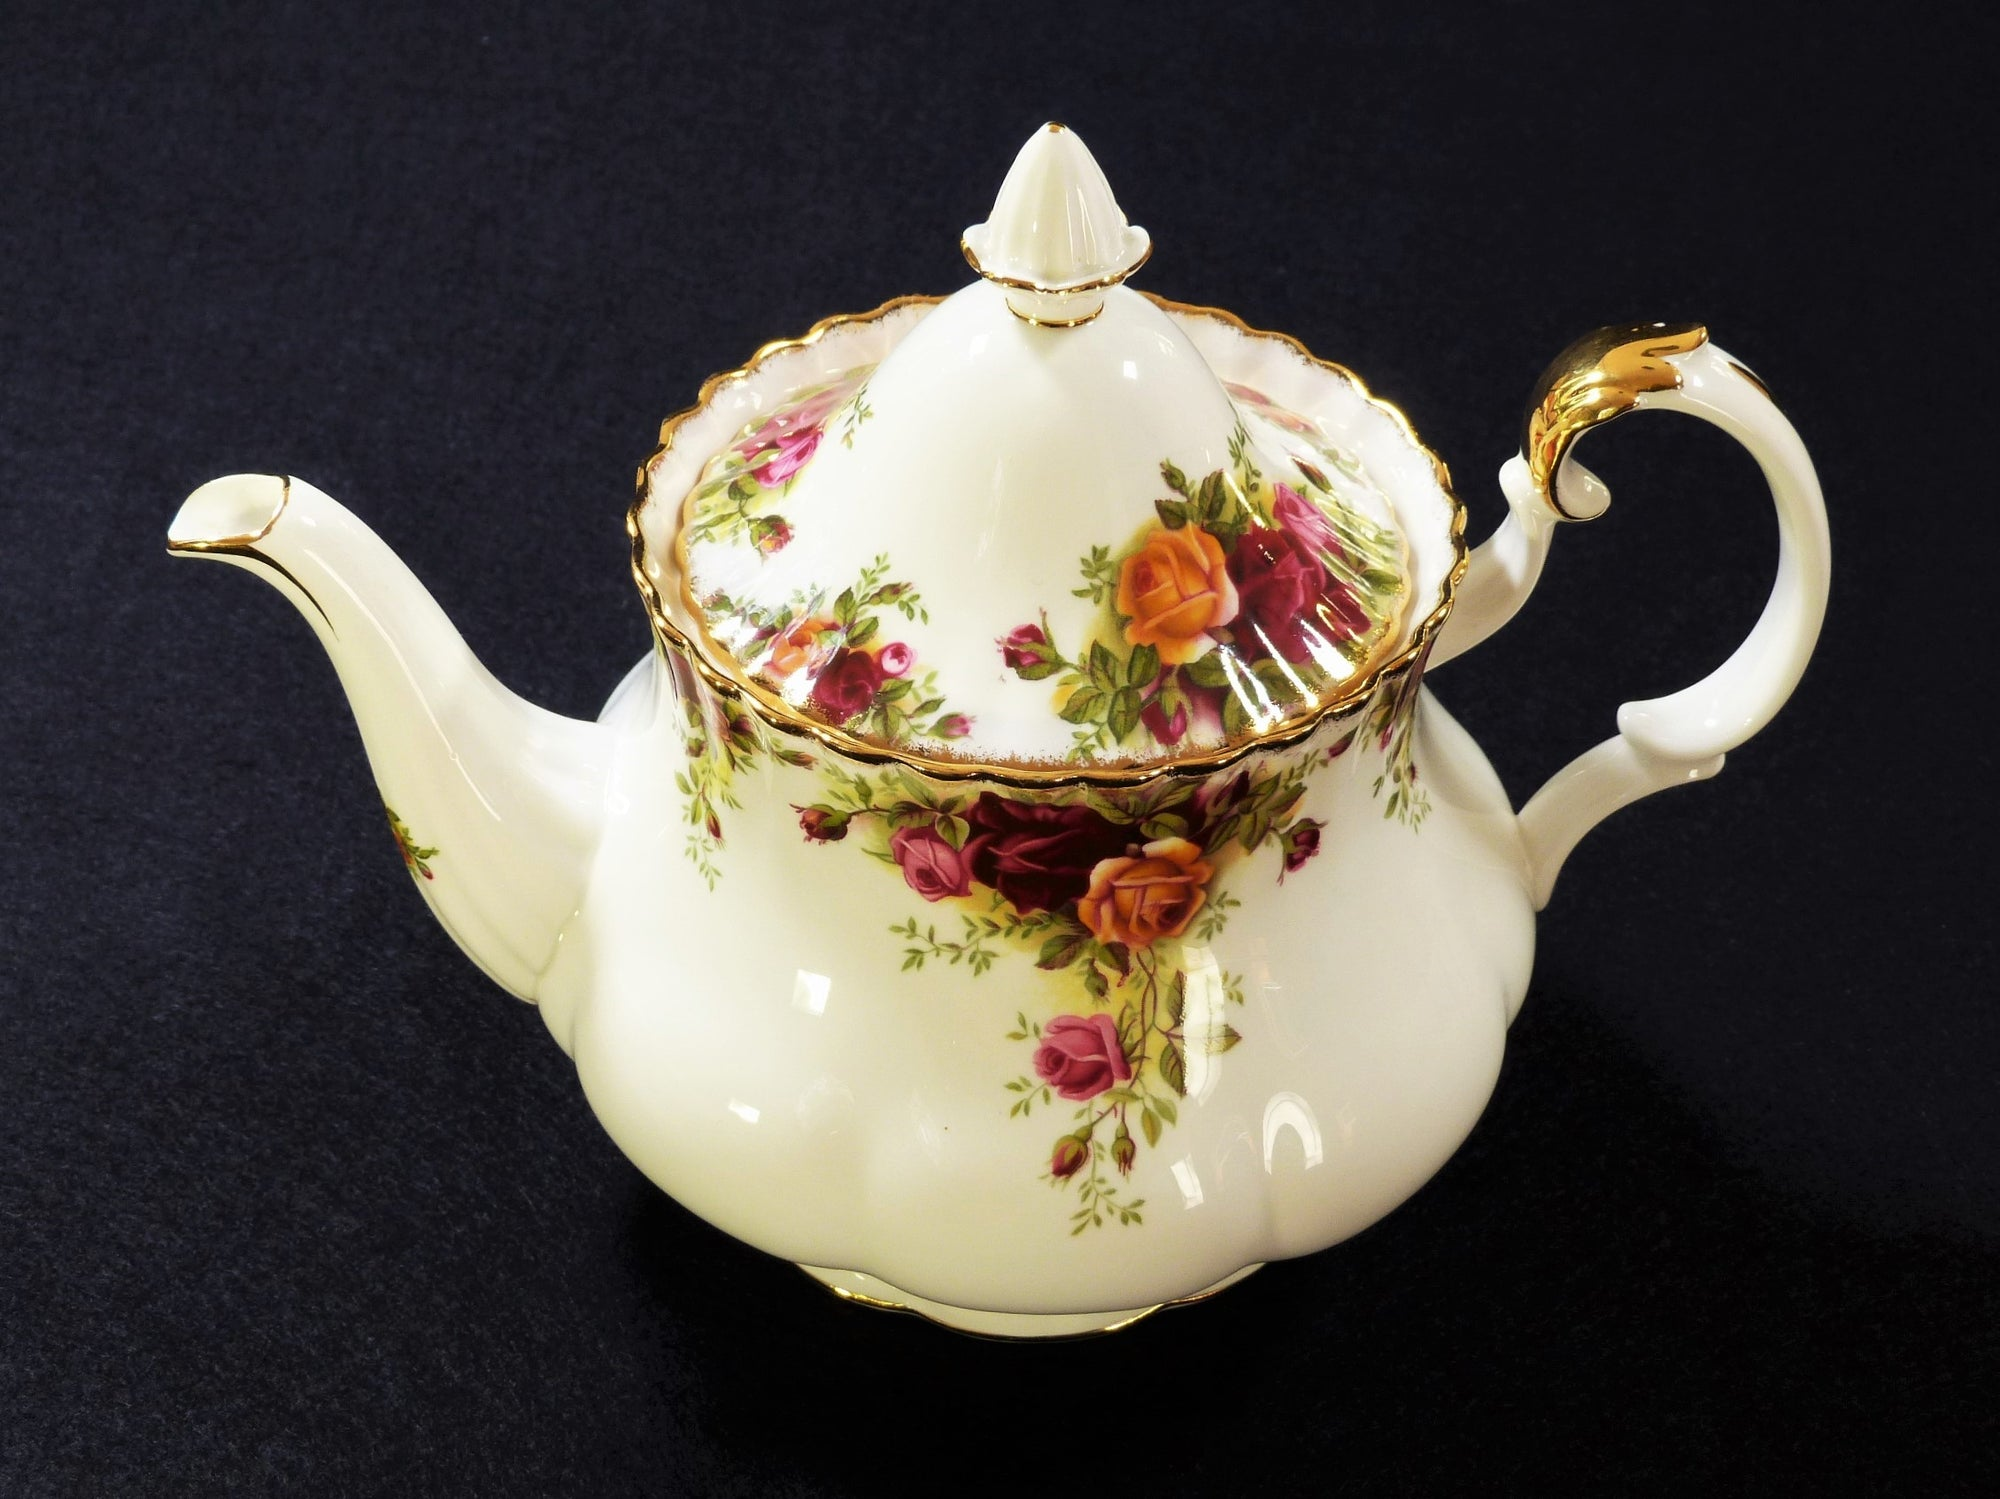 Royal Albert Teapot, Old Country Roses, Large Teapot, 6 Cup, Made in England